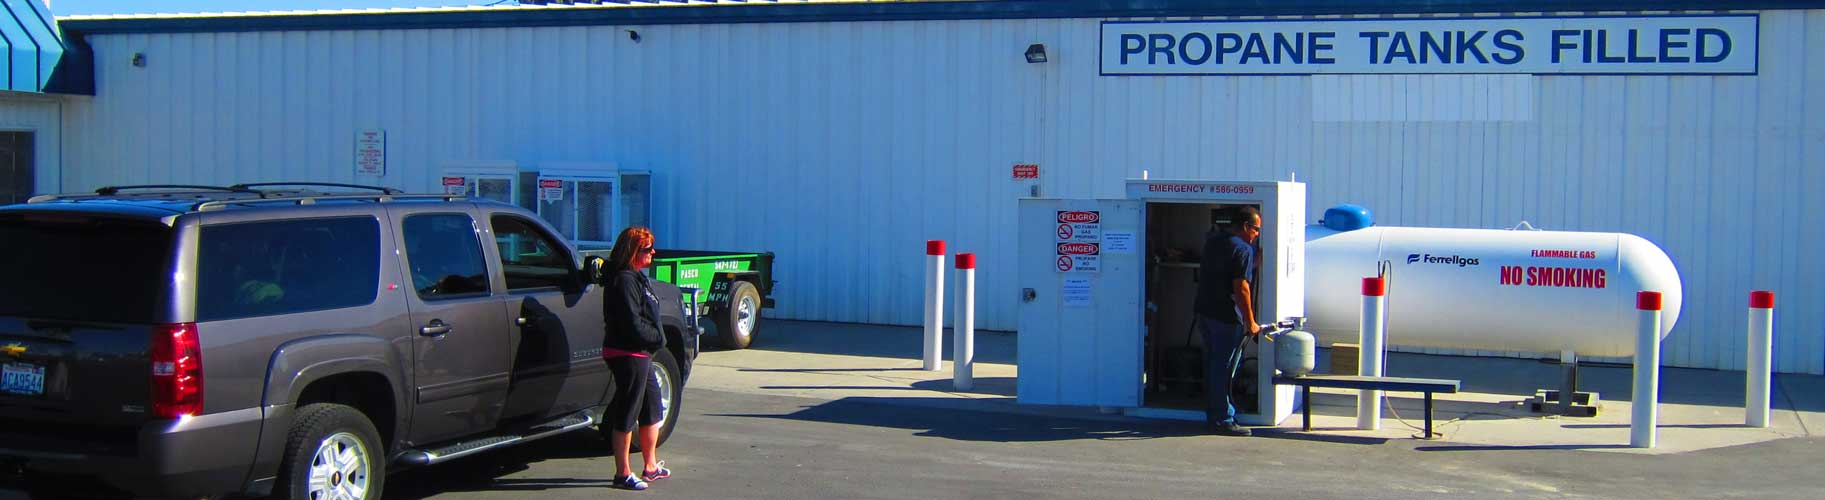 Buy Propane Gas at the Fastest Refill Station in the Tri-Cities!